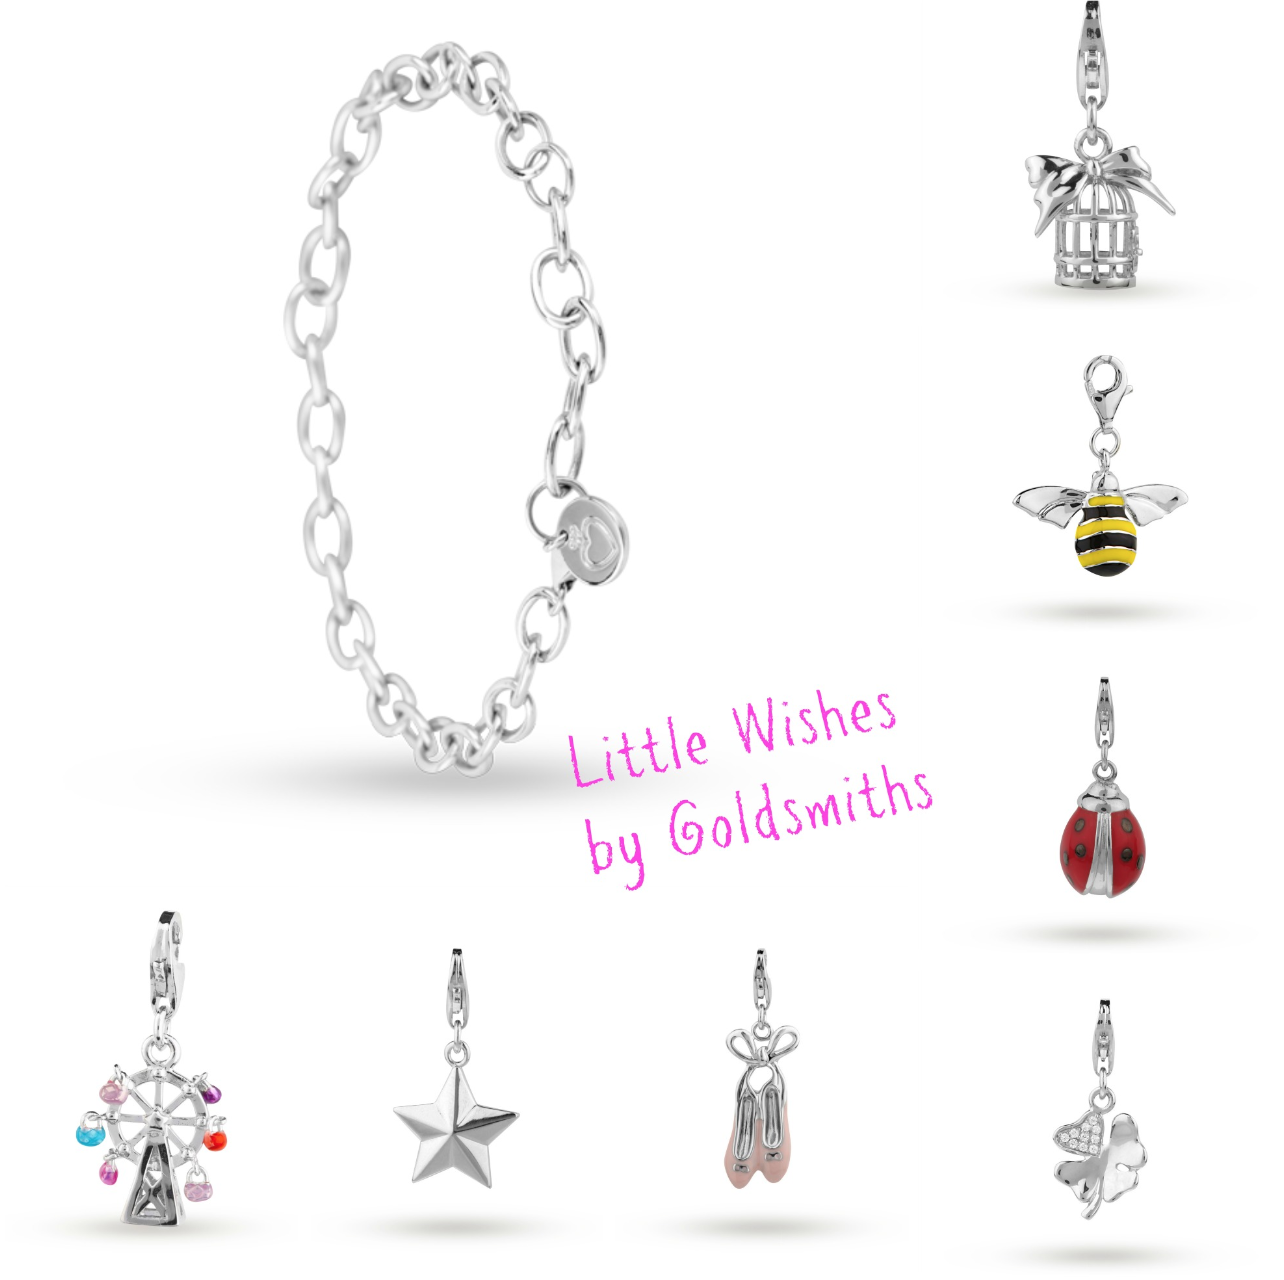 Little gils new jewellery for children first birthday gift ideas - Mamasvib V I Brand The New Little Wishes By Goldsmiths Jewellery Collection For Little Girls